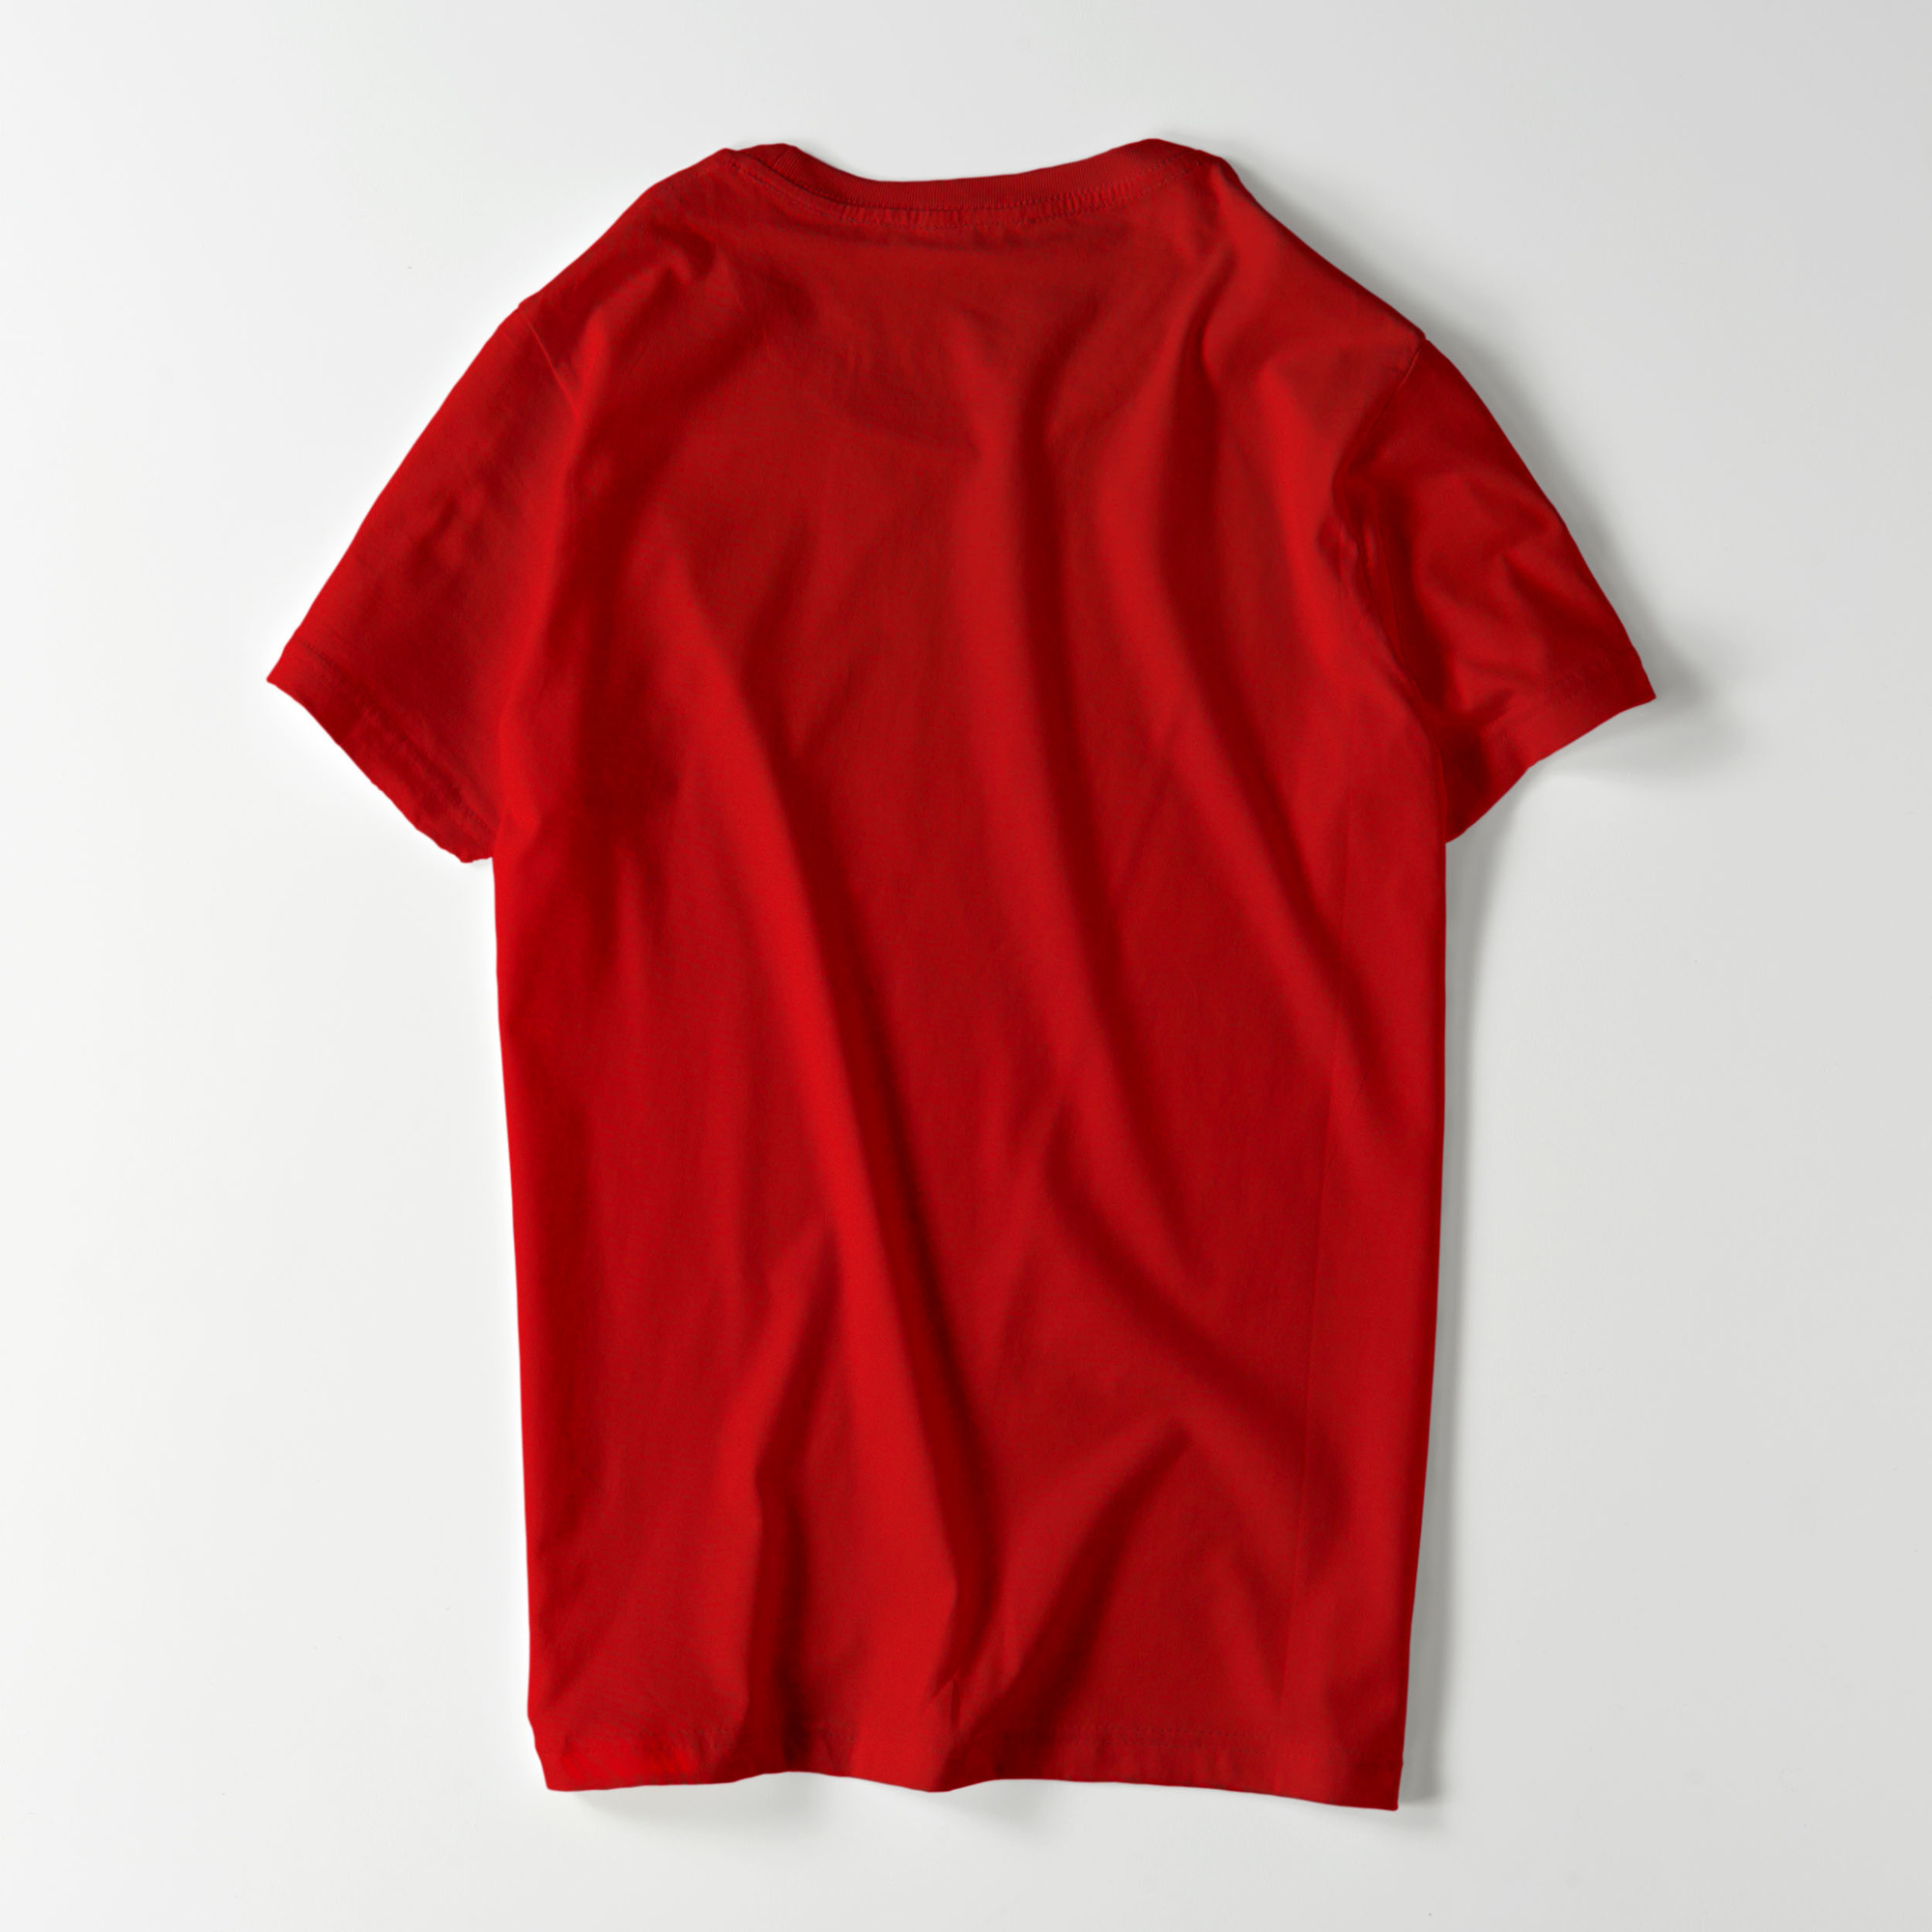 pmt013-9320-00006red-f